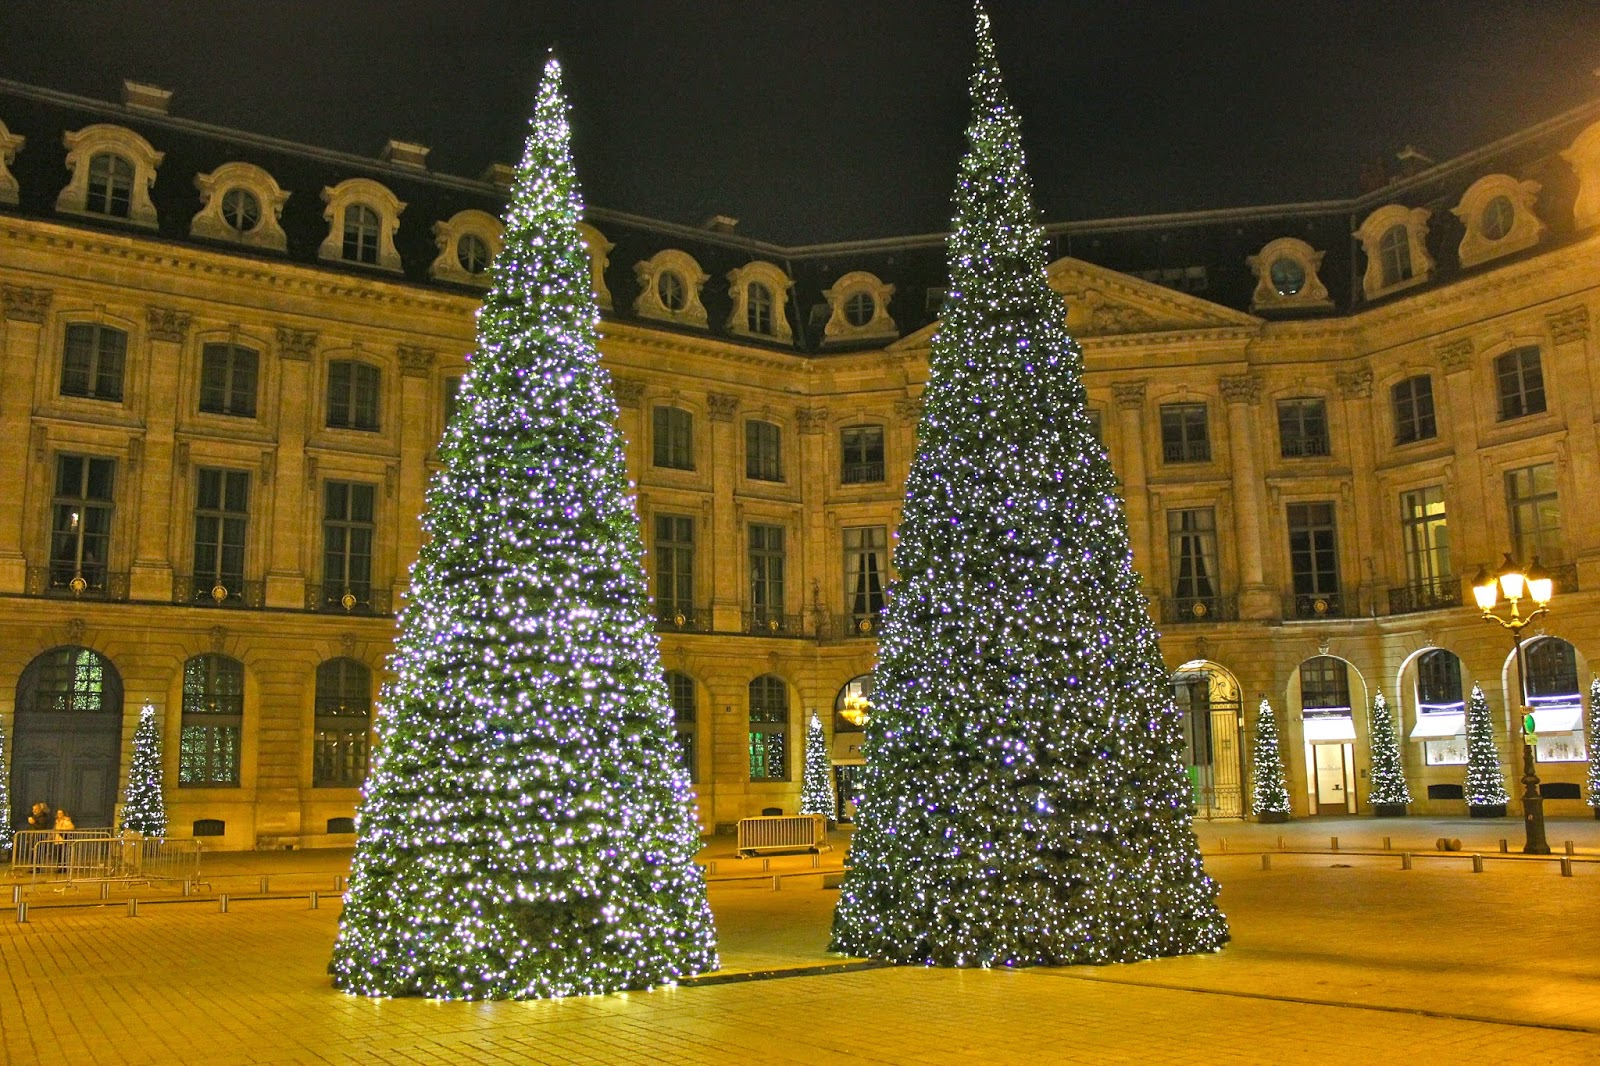 Esther paris illuminations place vendome 2014 - Illumination paris 2014 ...